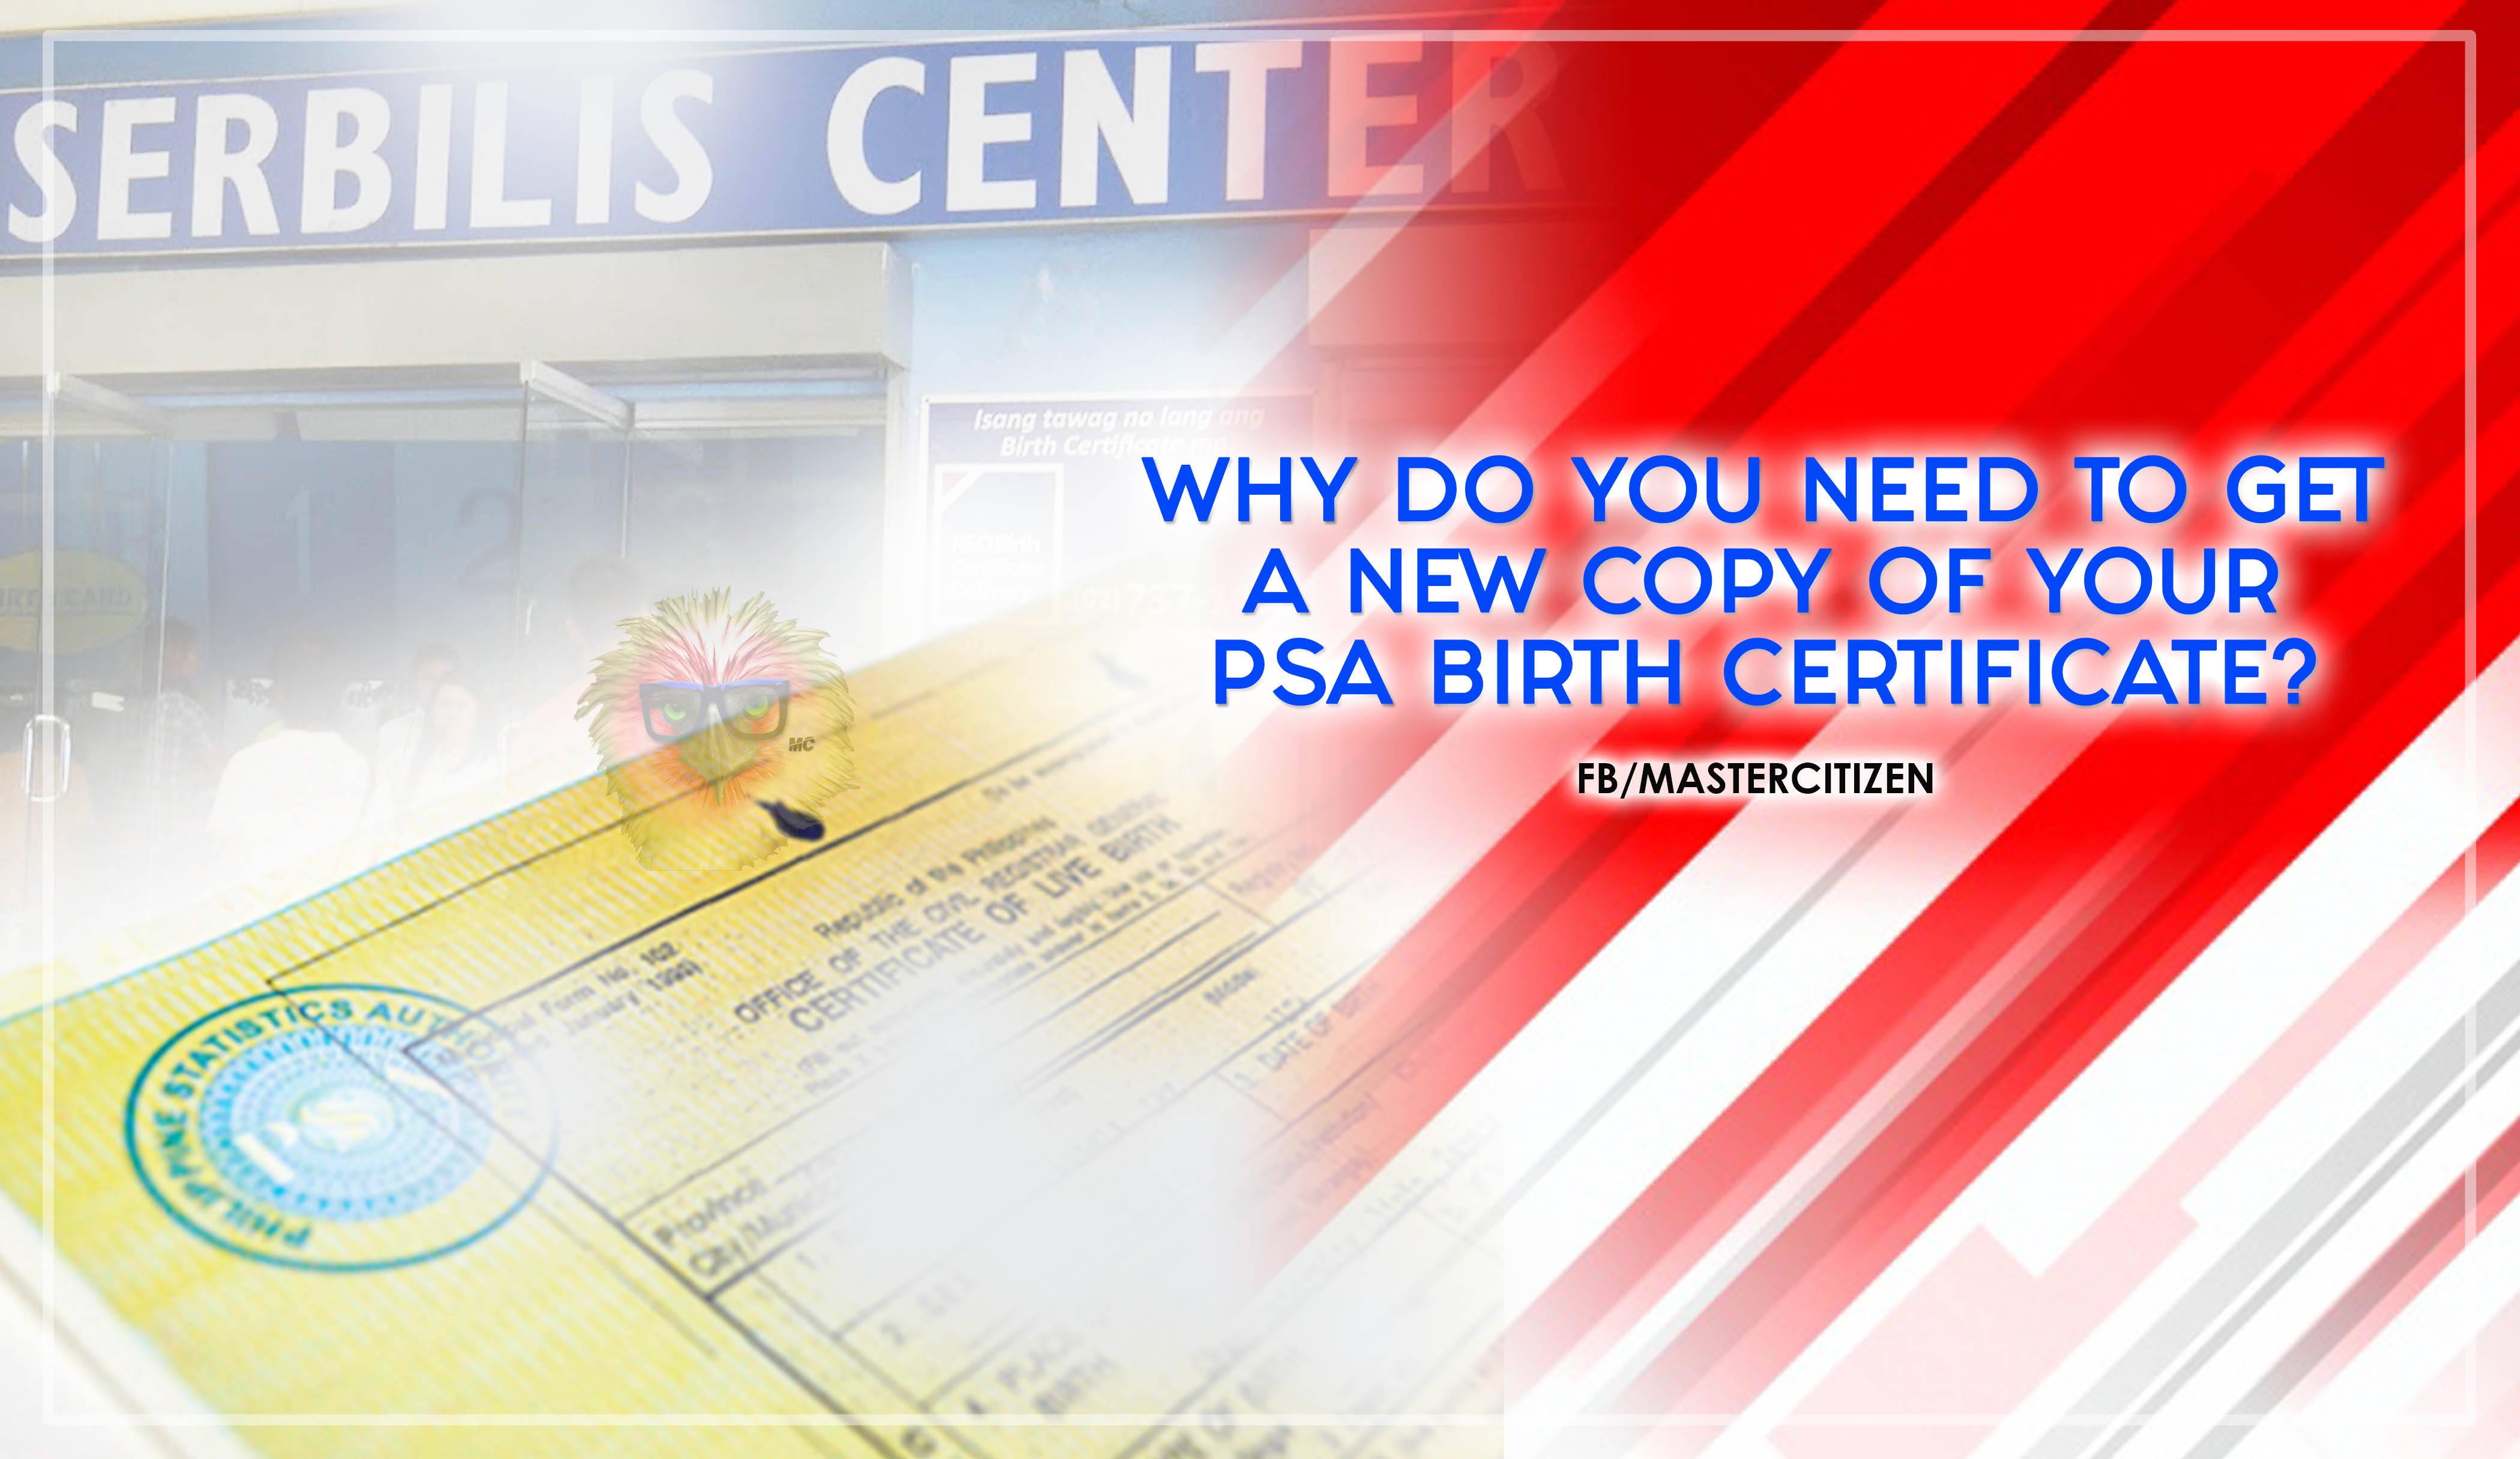 Why Do You Need To Get A New Copy Of Your Psa Birth Certificate